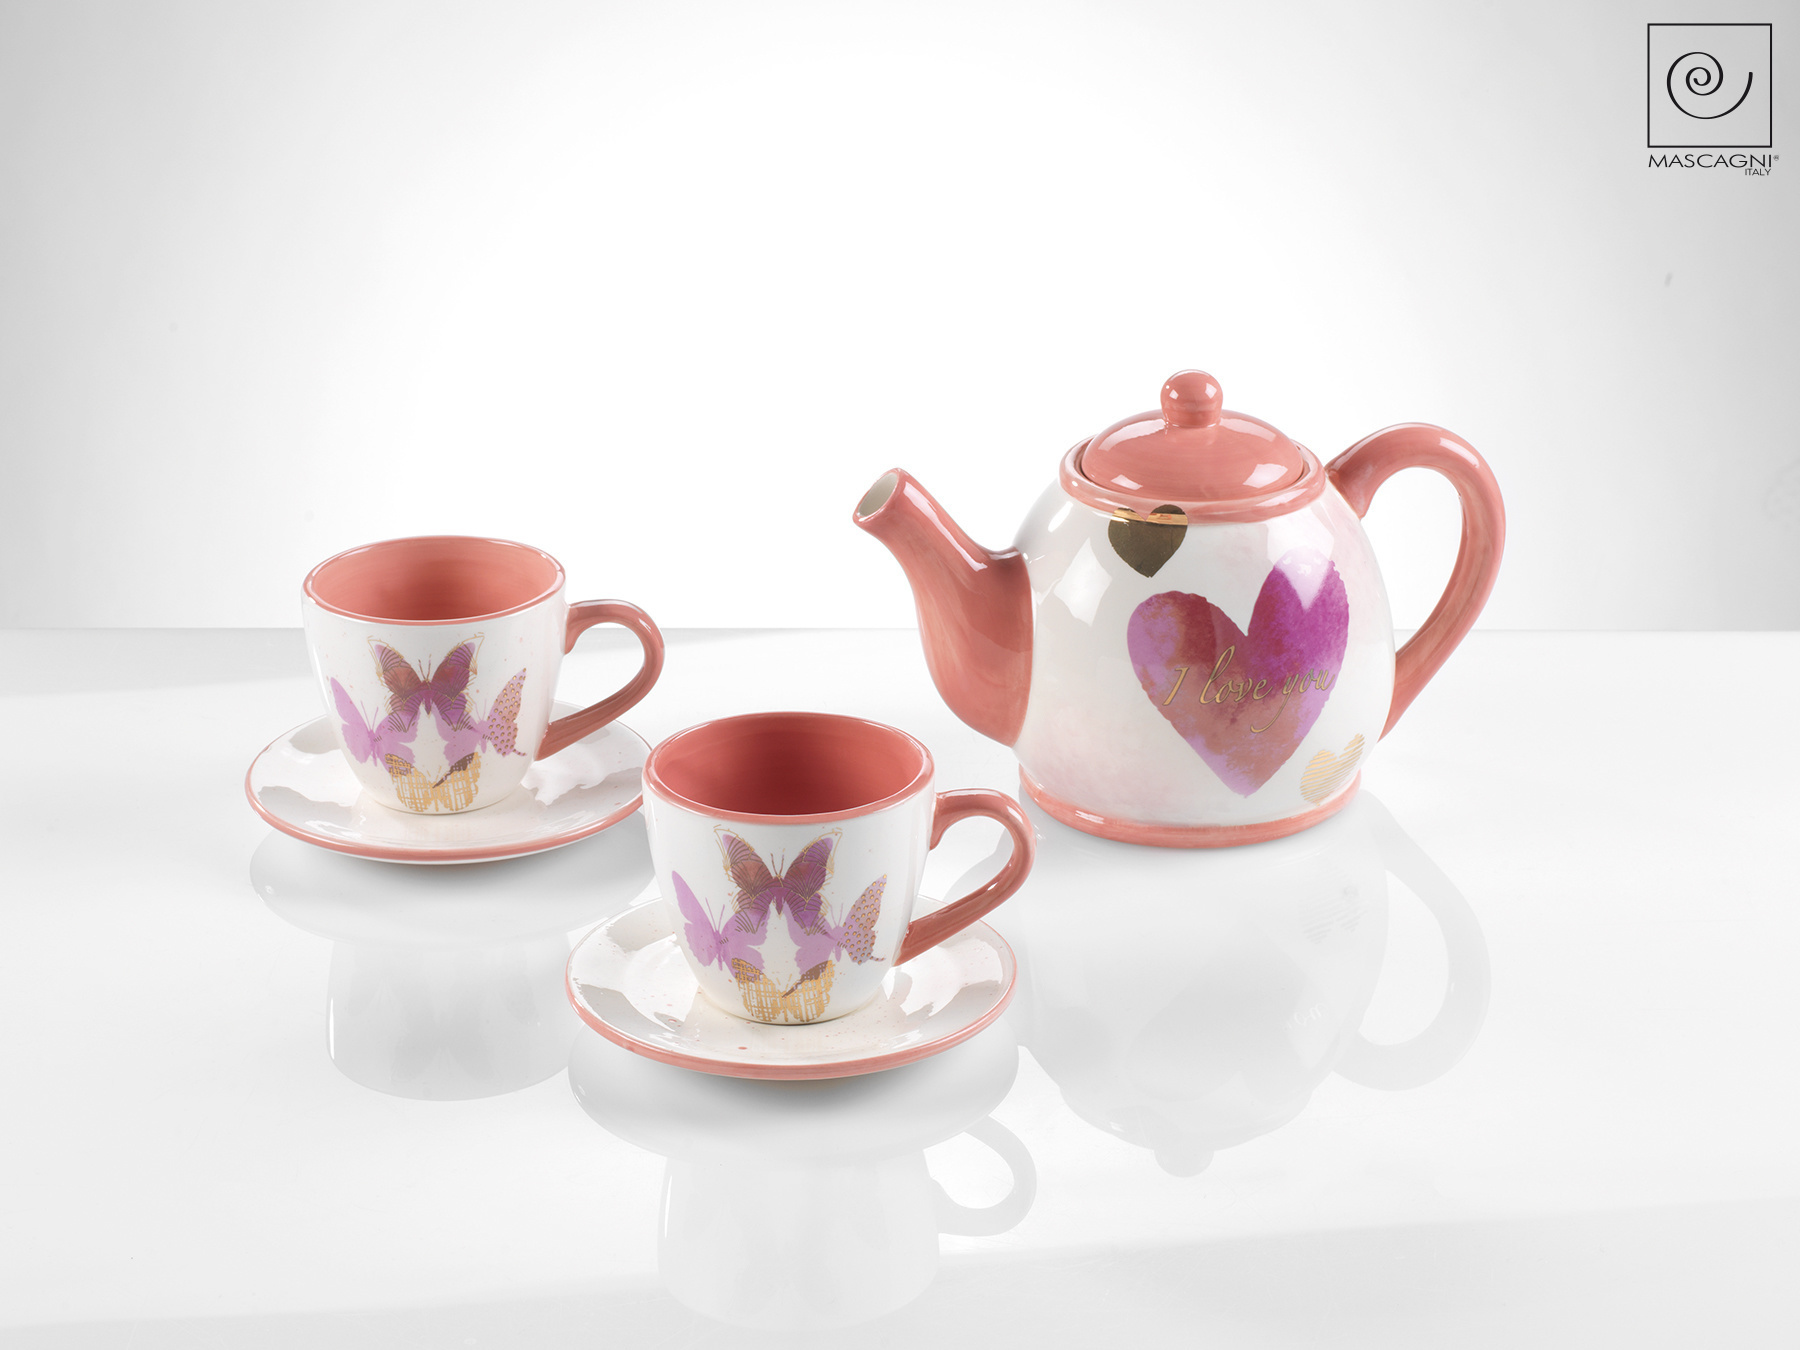 Art Mascagni A1019 SET 2 CUPS